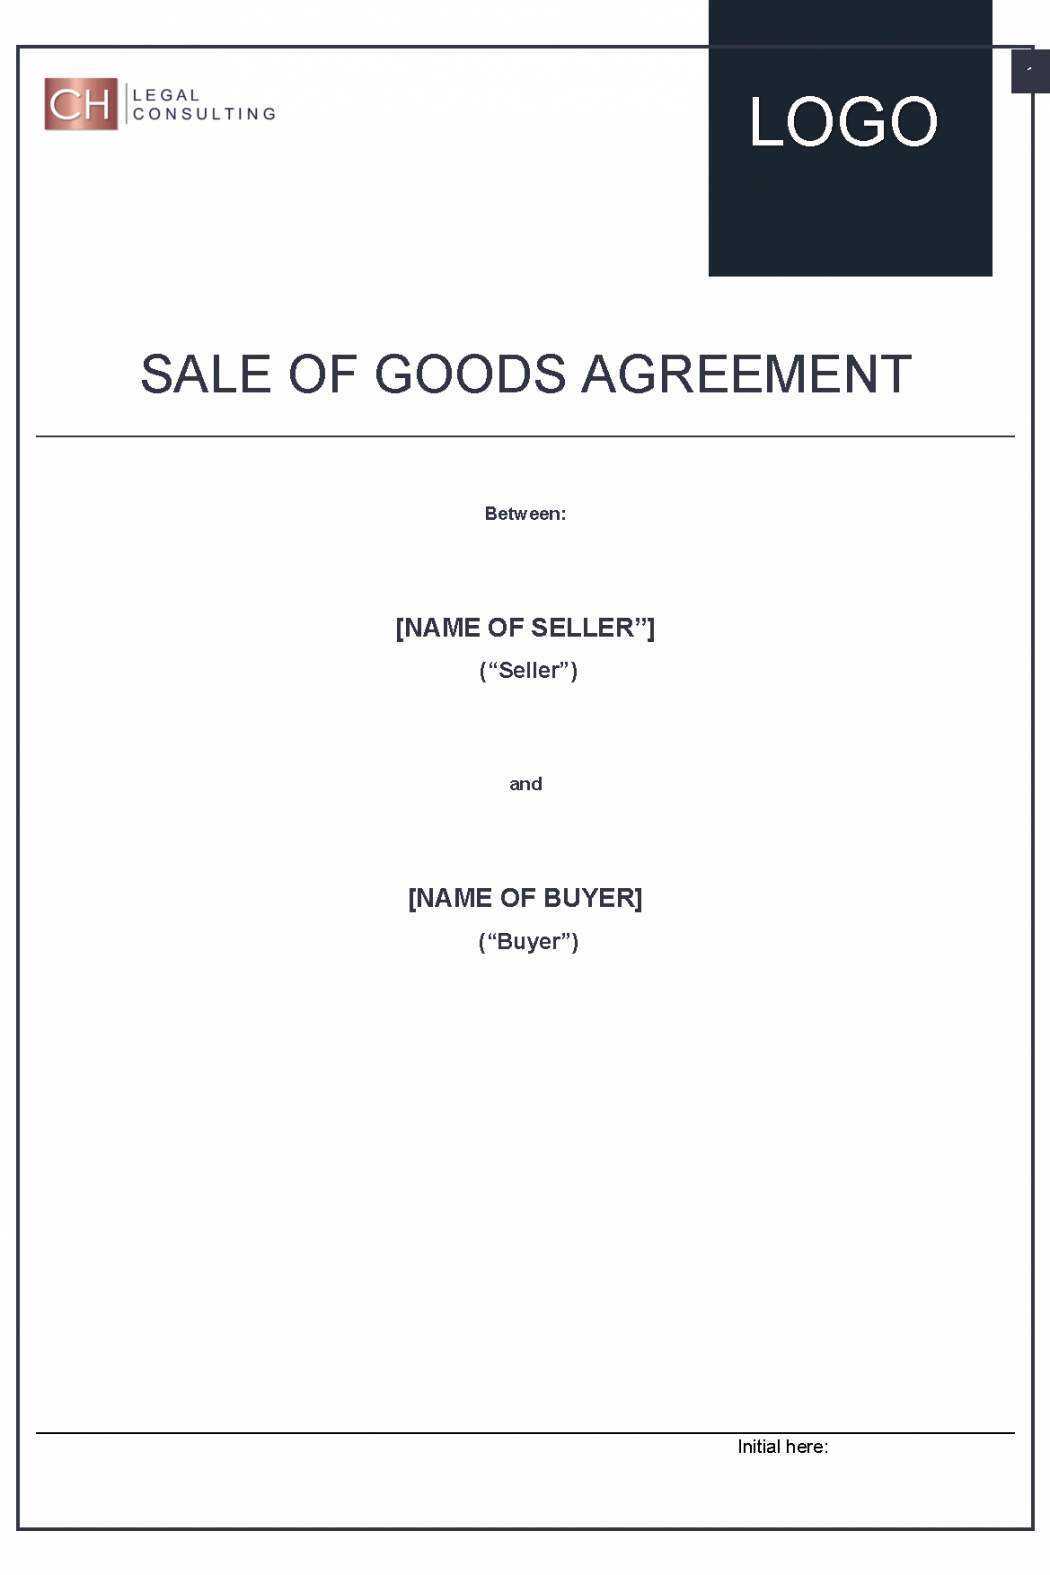 Sale of Goods Agreement